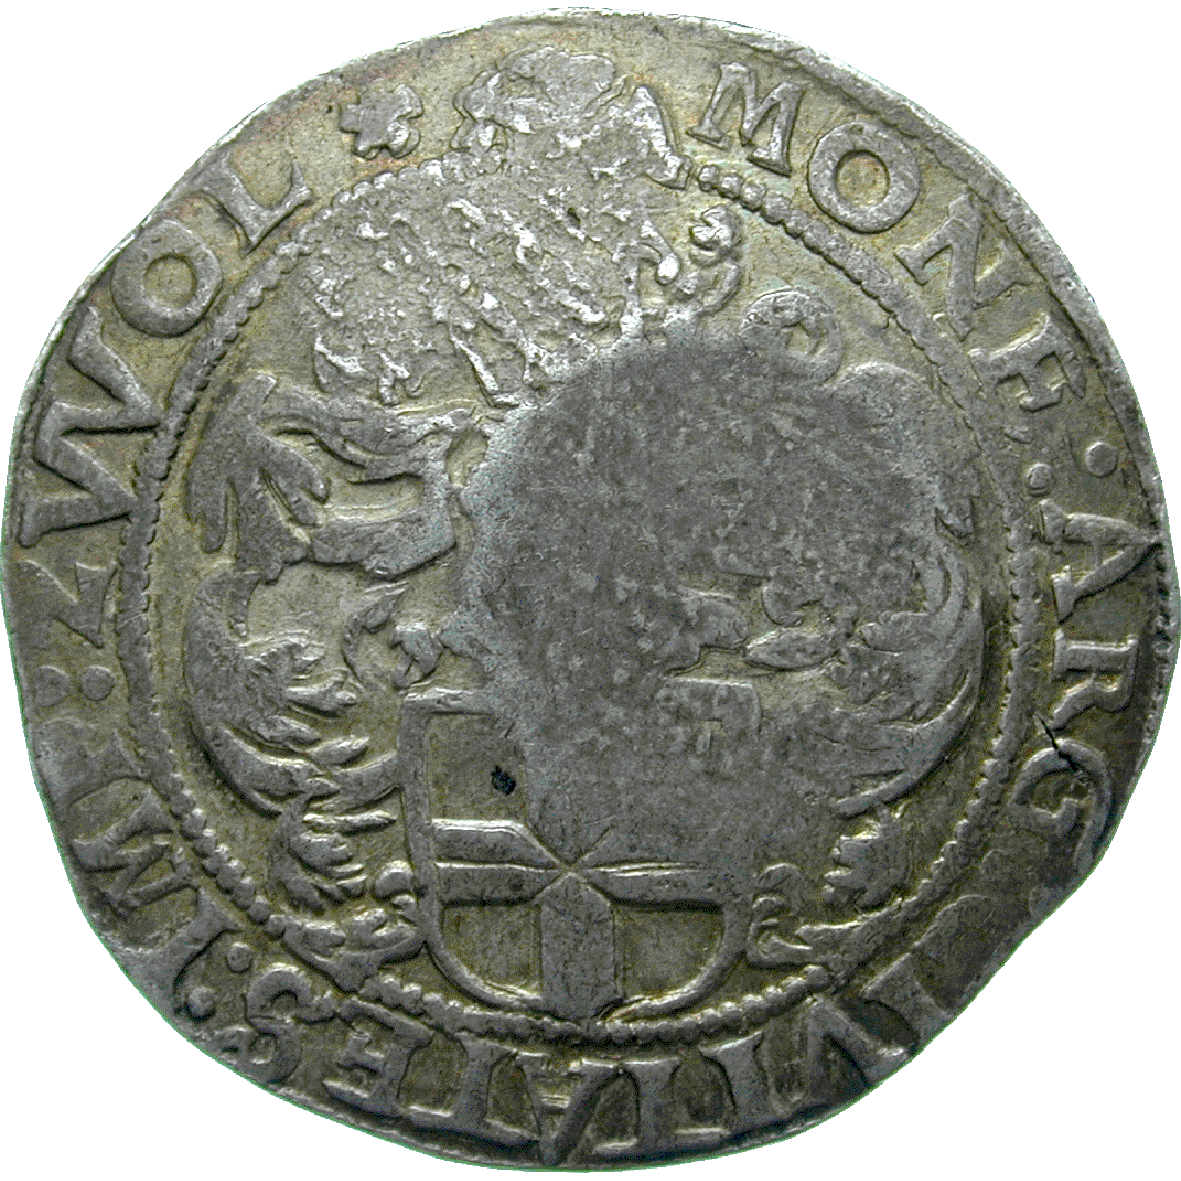 Russian Empire, Alexis I, Yefimok 1655 (reverse)